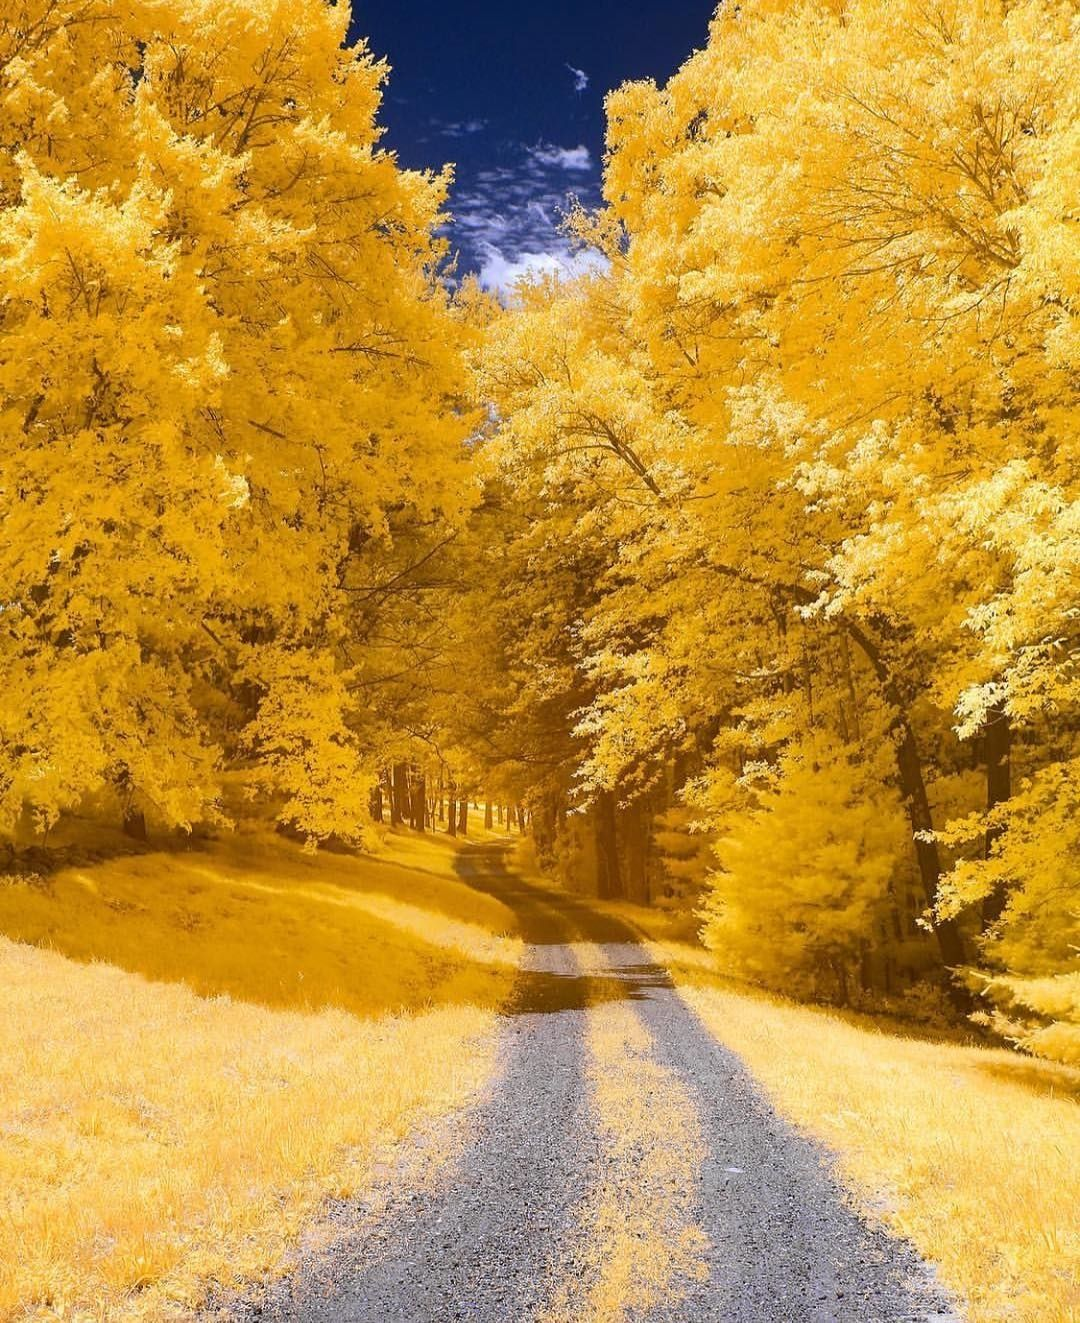 Dirt Road In Andover Autumn Landscape Nature Photography Autumn Scenery